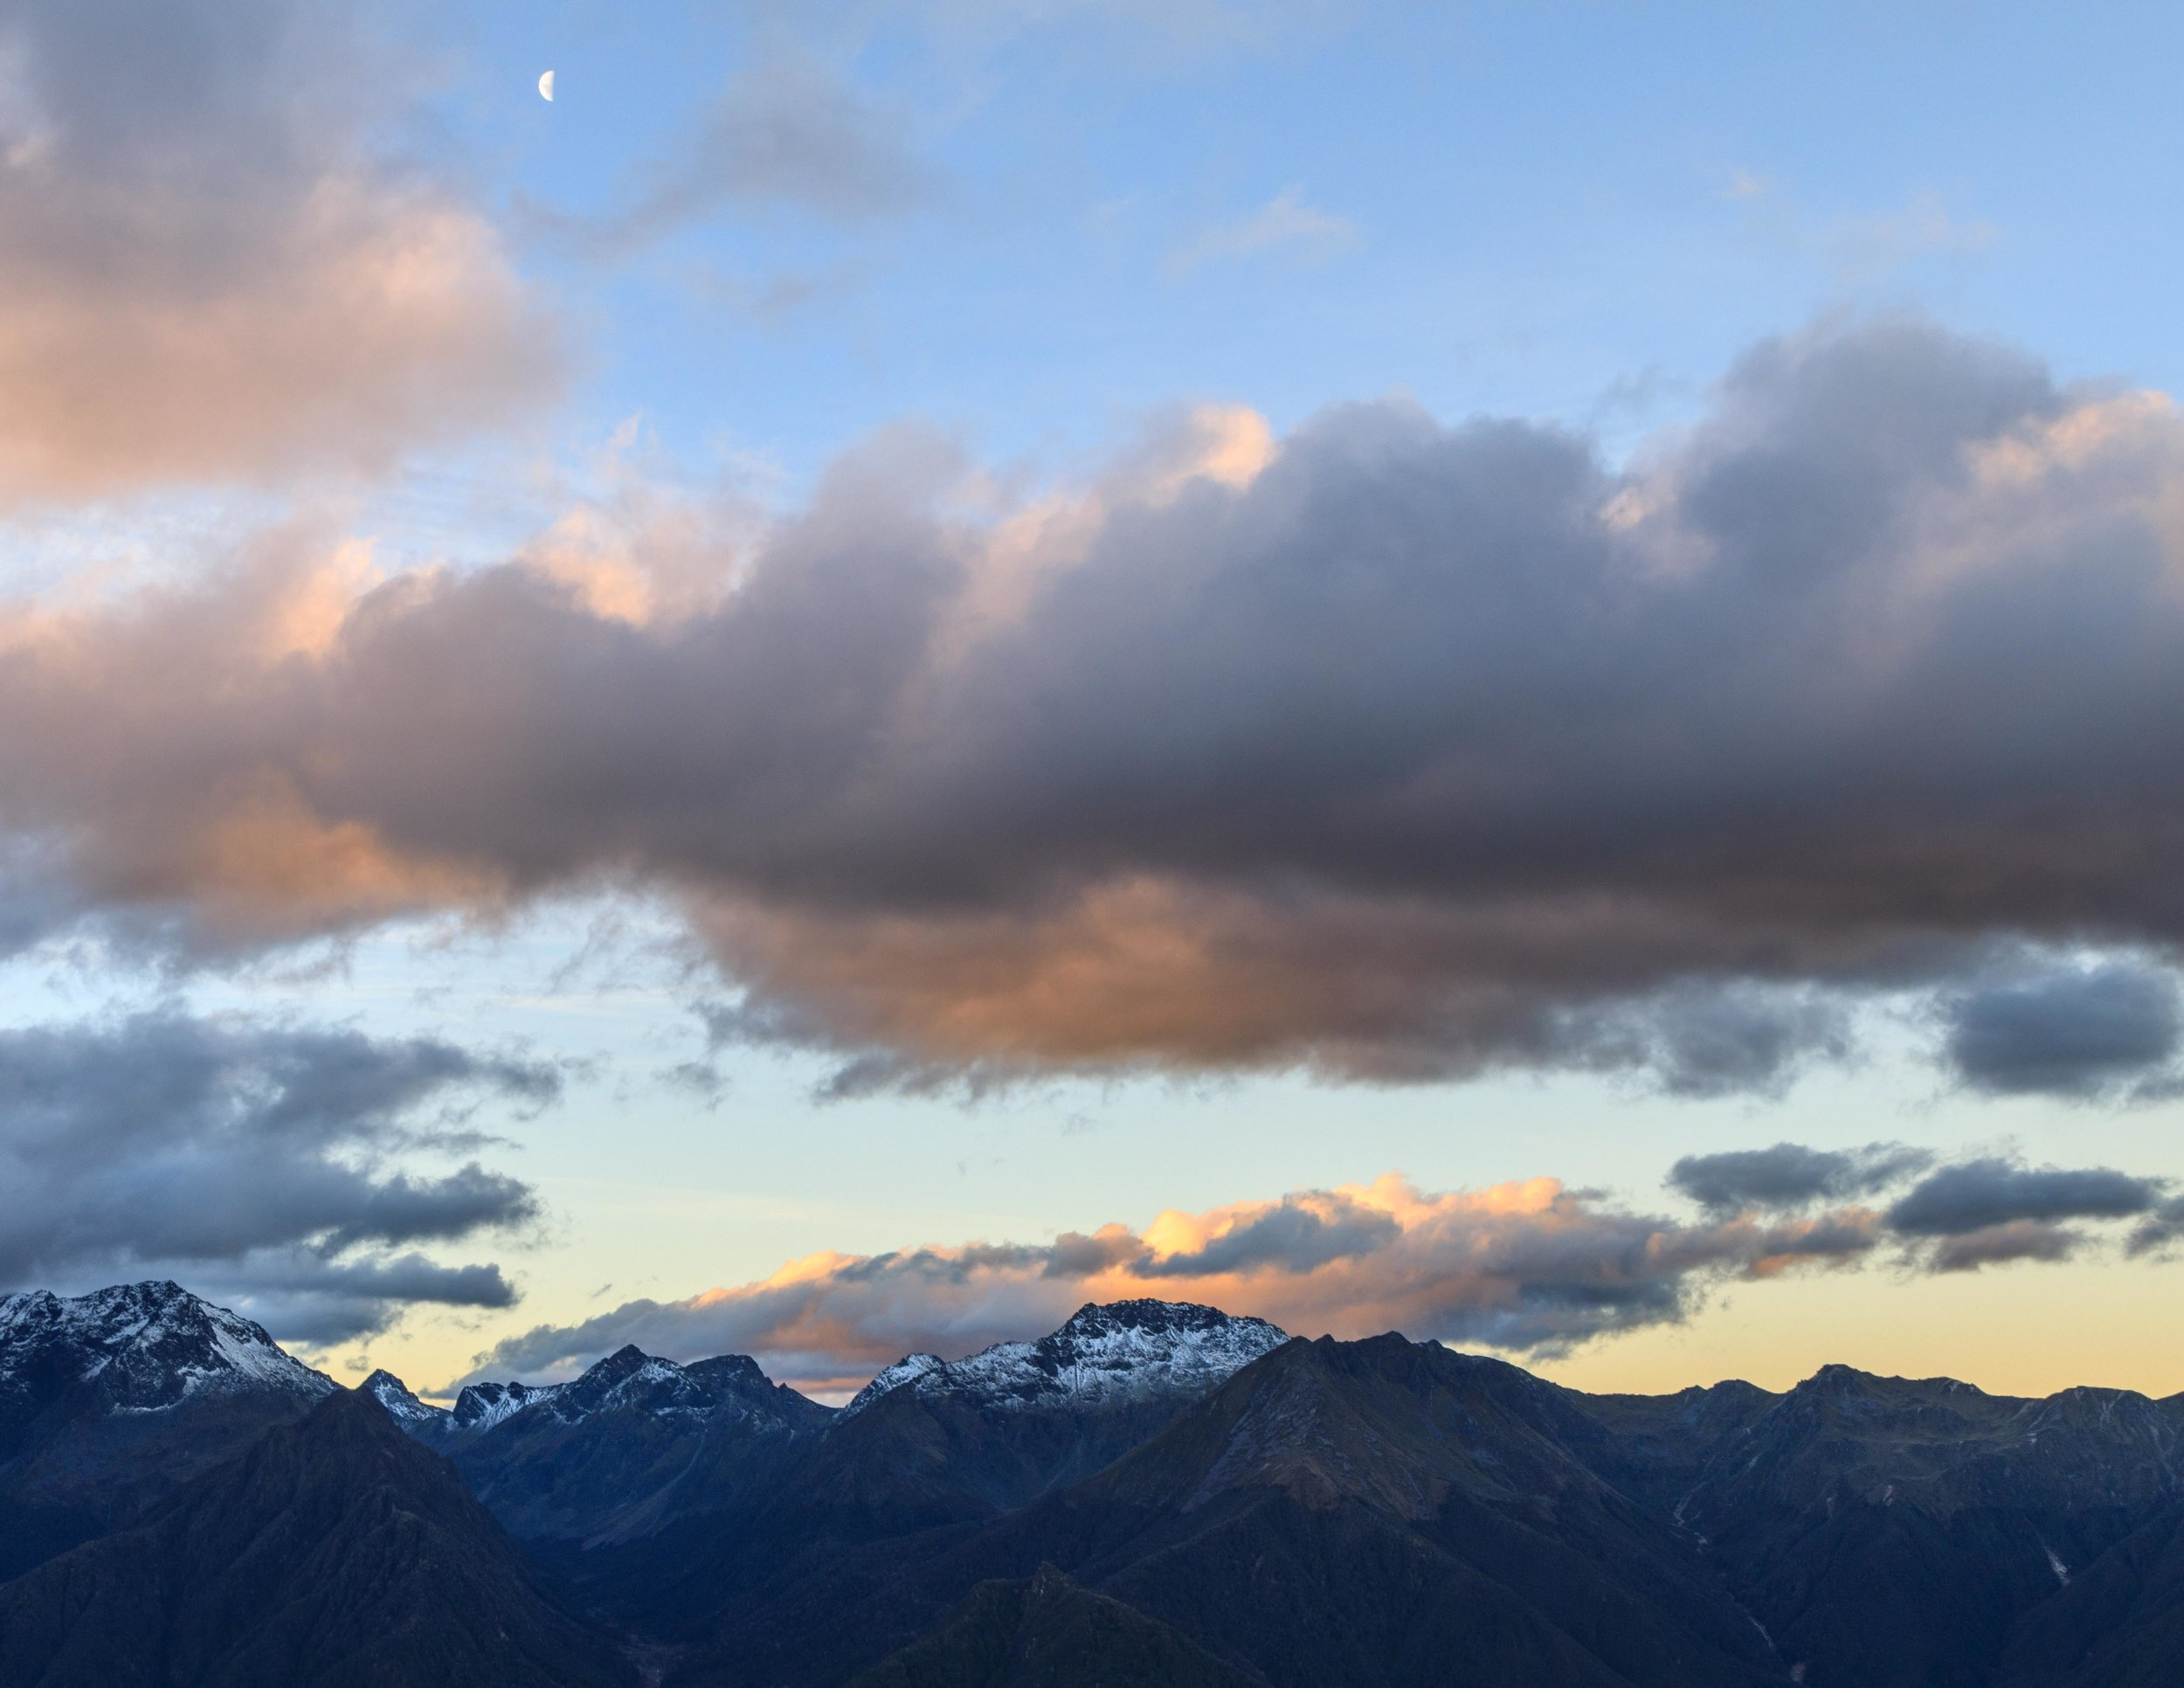 The view from Luxmore Hut at sunset